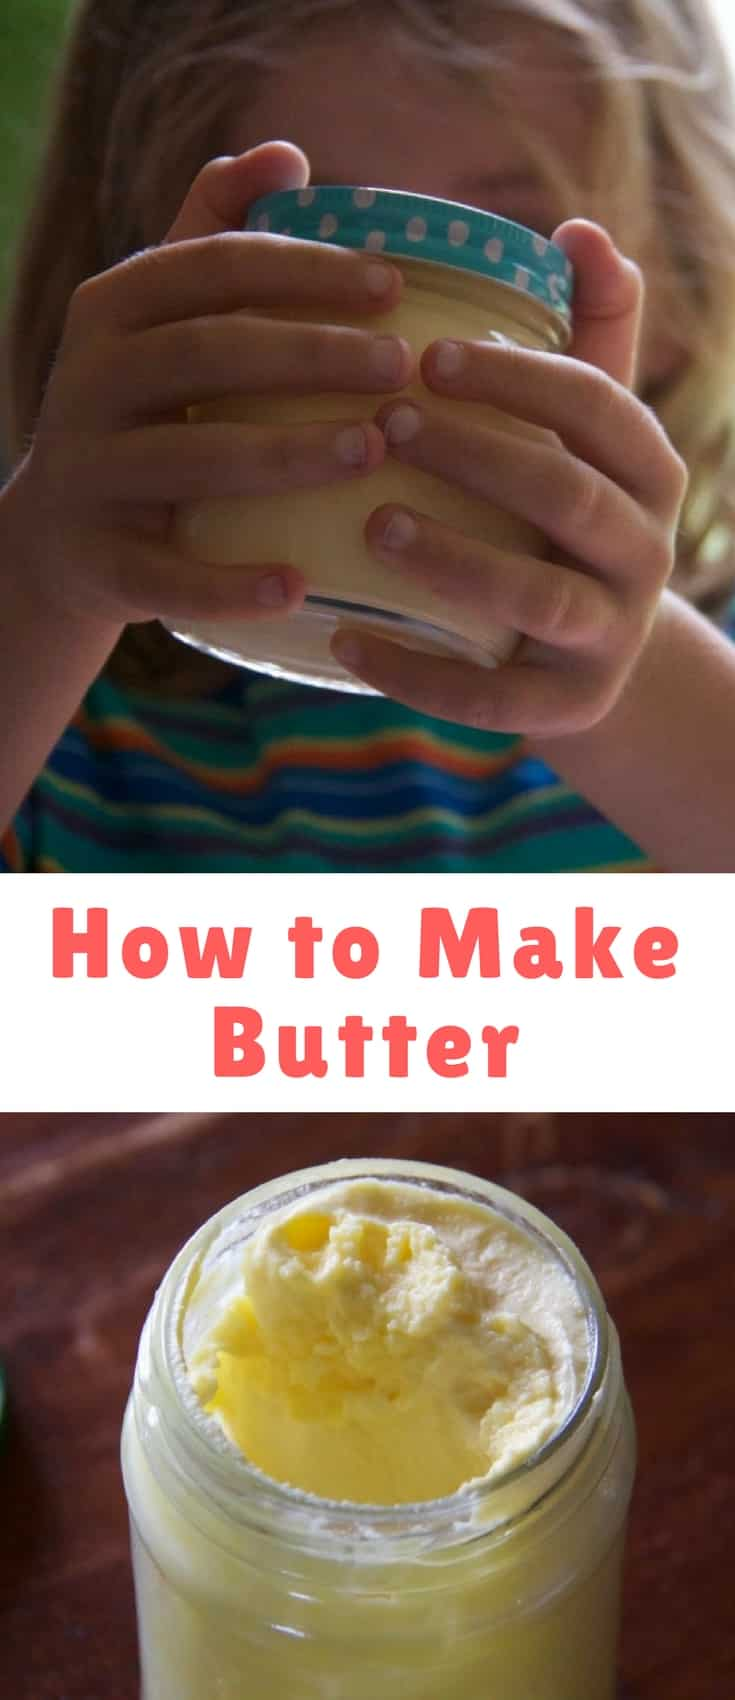 This week saw me tagging along with the Little Sister to kindergarten to teach her kindy mates how to make butter.